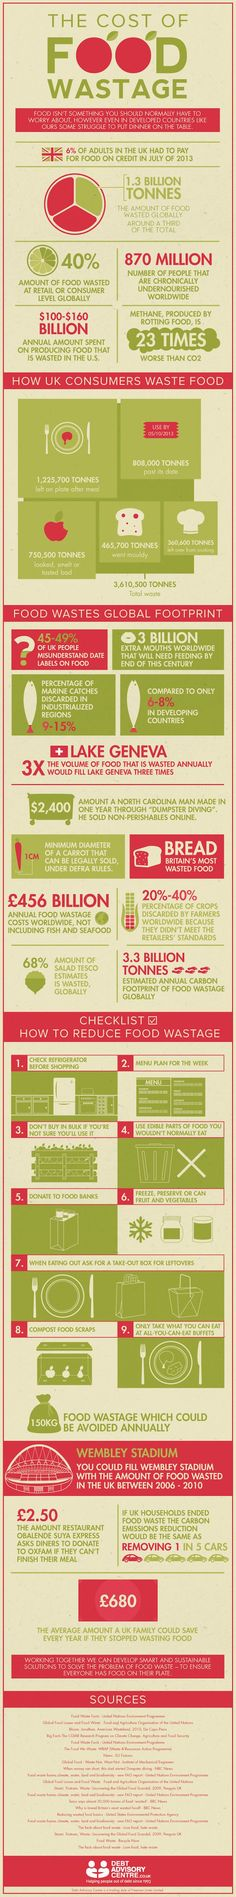 the cost of food wastage, infographic, food waste, sustainable lifestyle… Sustainable Food, Sustainable Living, Food Technology, World Hunger, Food Security, Food System, Web Design, Along The Way, Agriculture